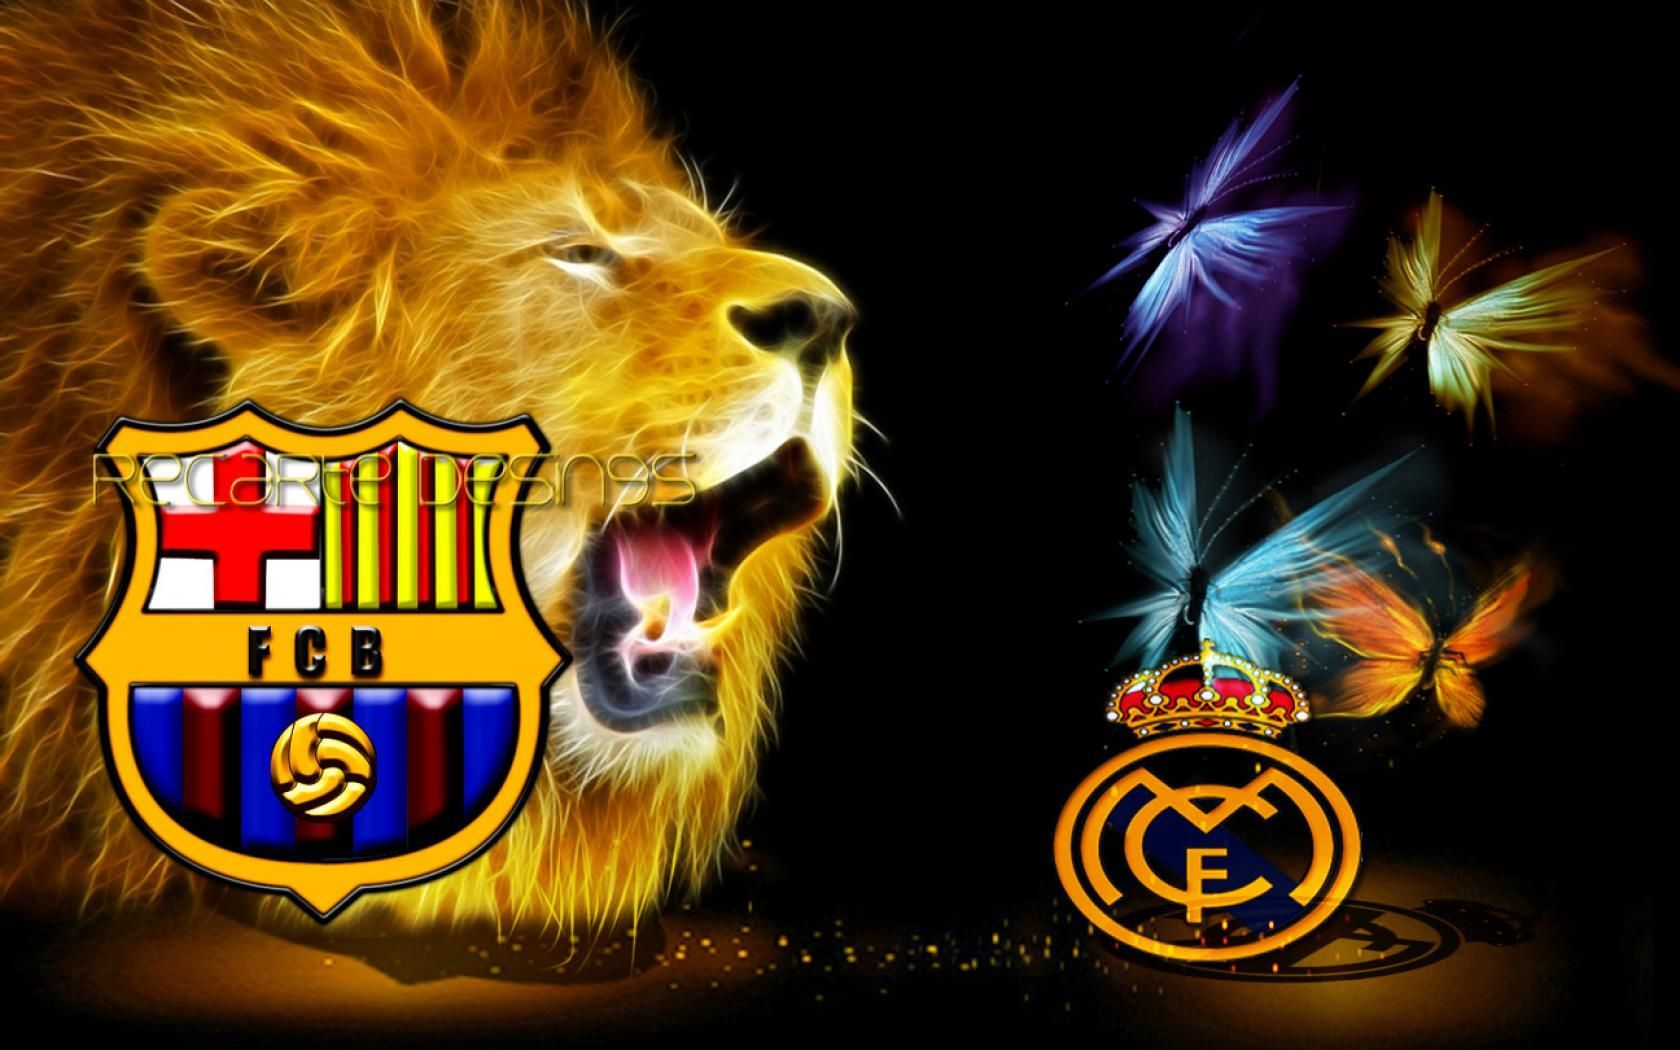 Fcb Vs Real Madrid Wallpaper In 2020 Real Madrid Logo Wallpapers Madrid Wallpaper Real Madrid Wallpapers